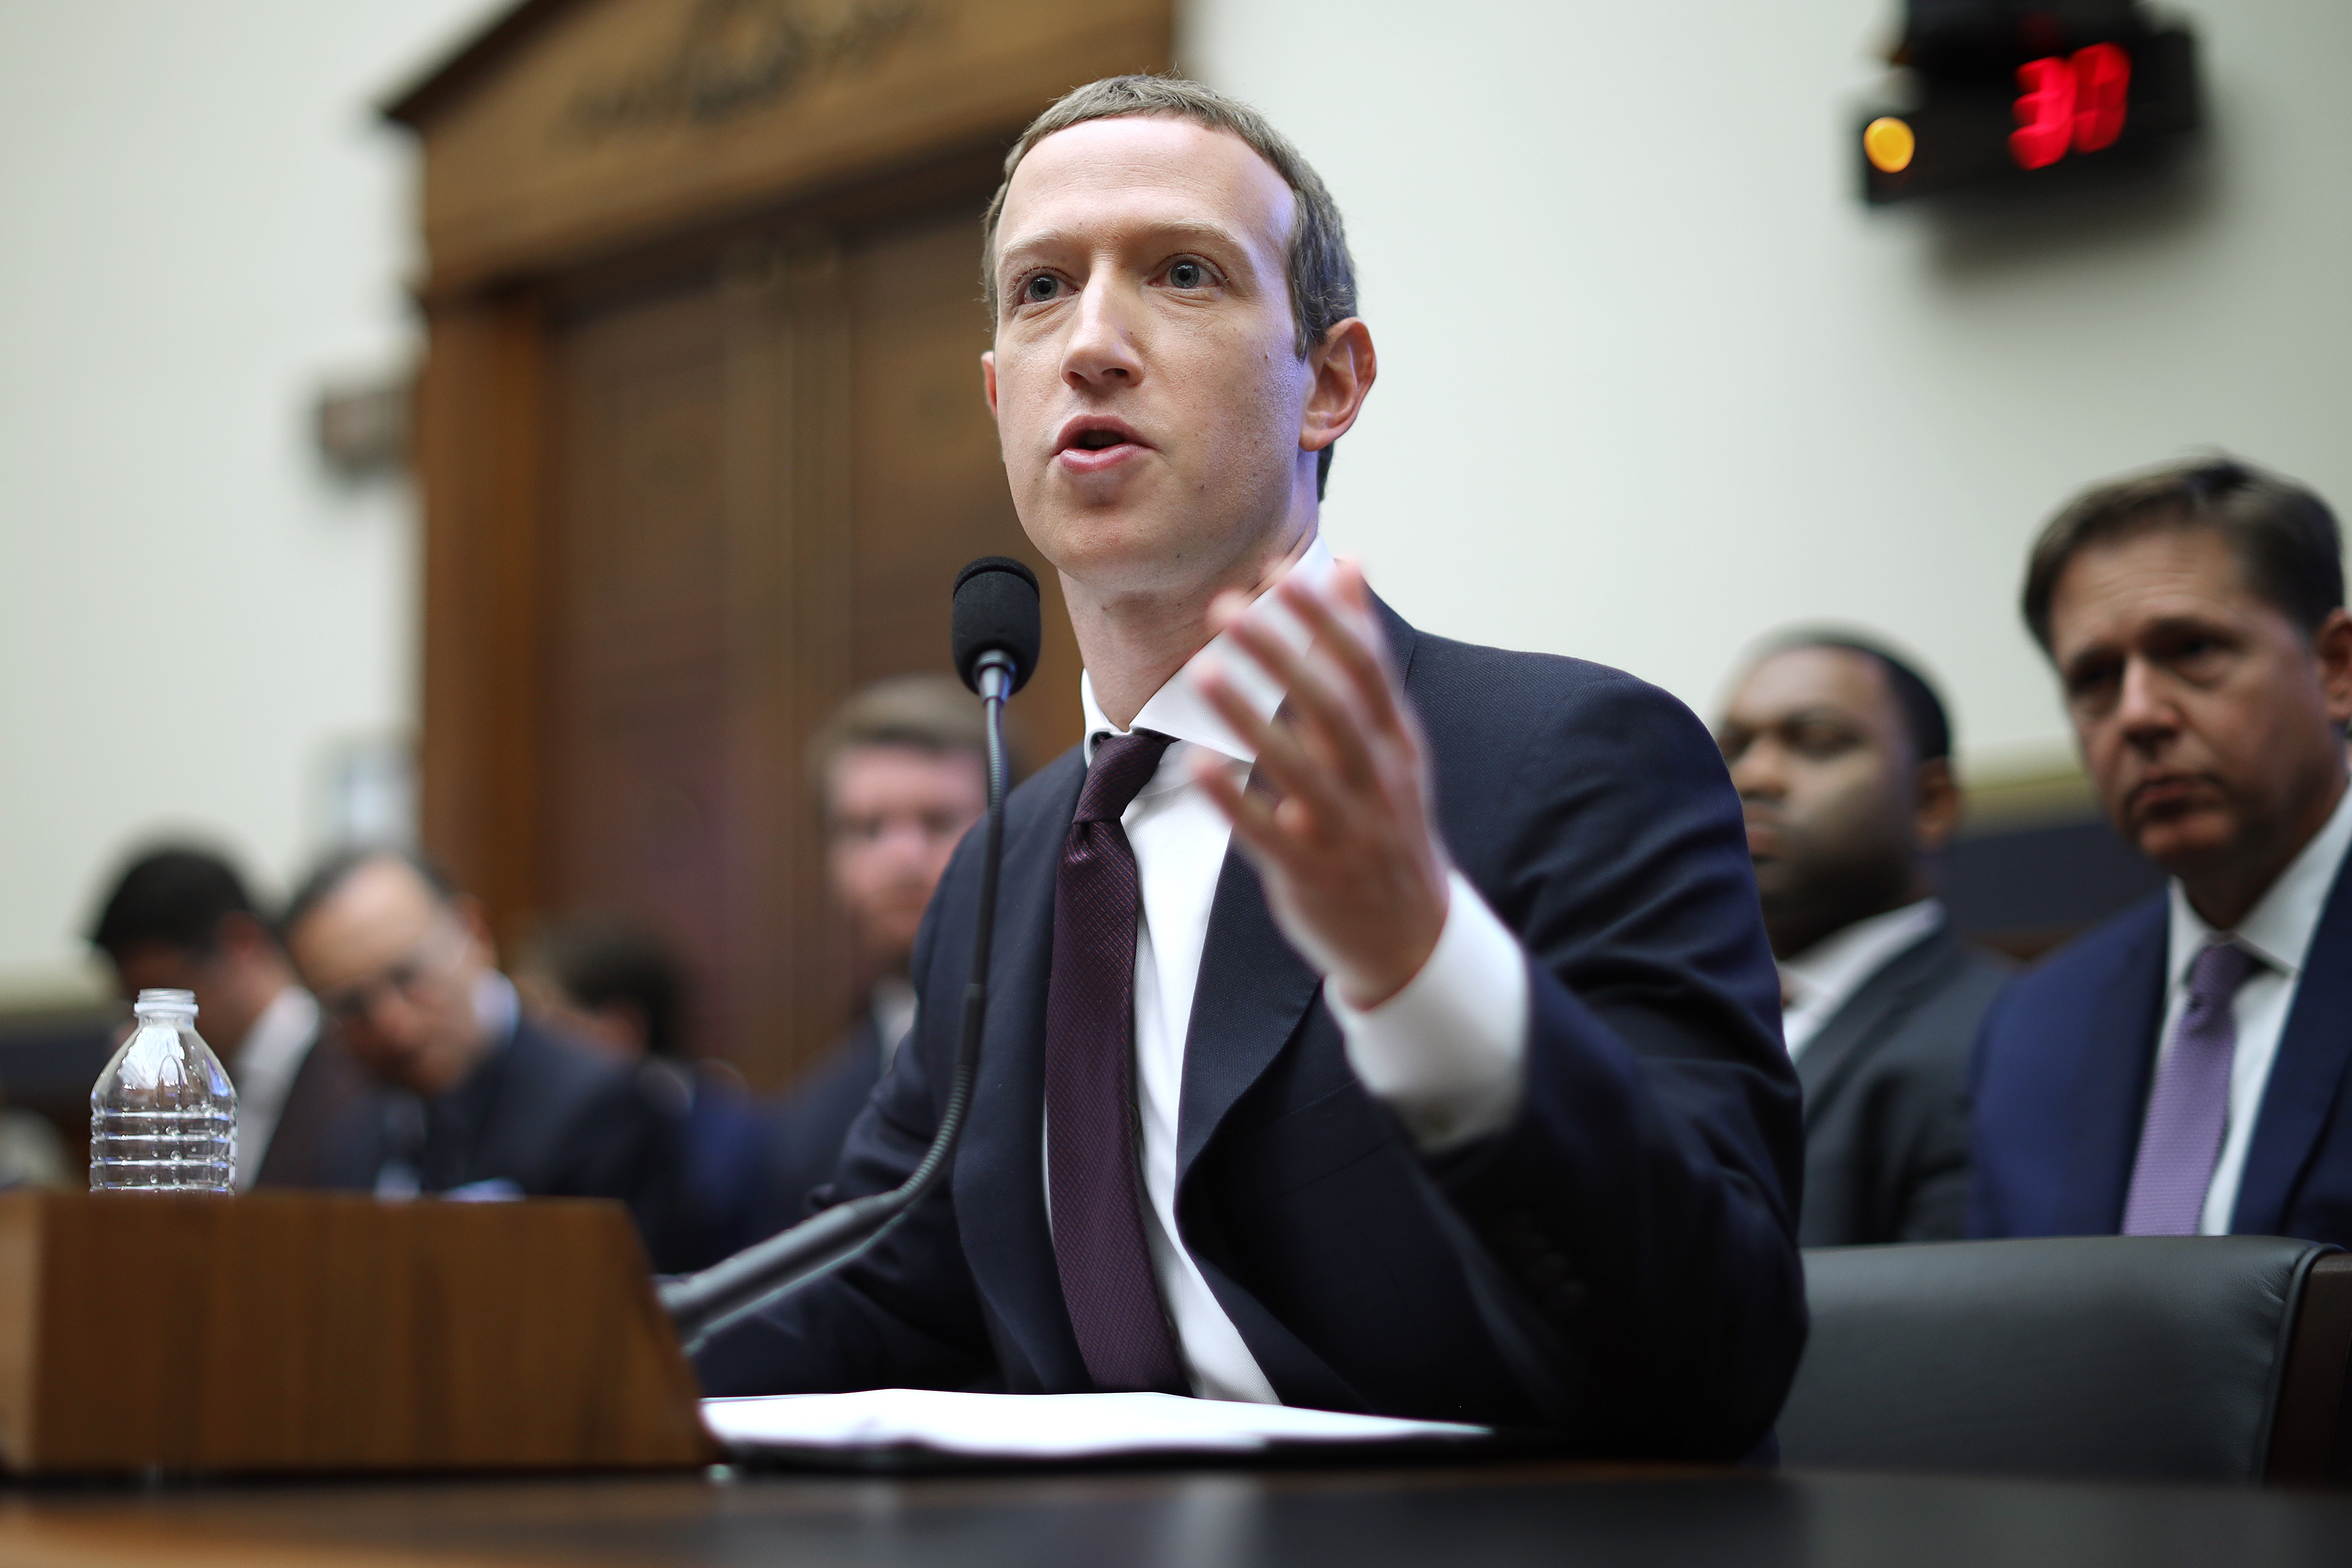 Facebook will continue letting politicians lie in ads